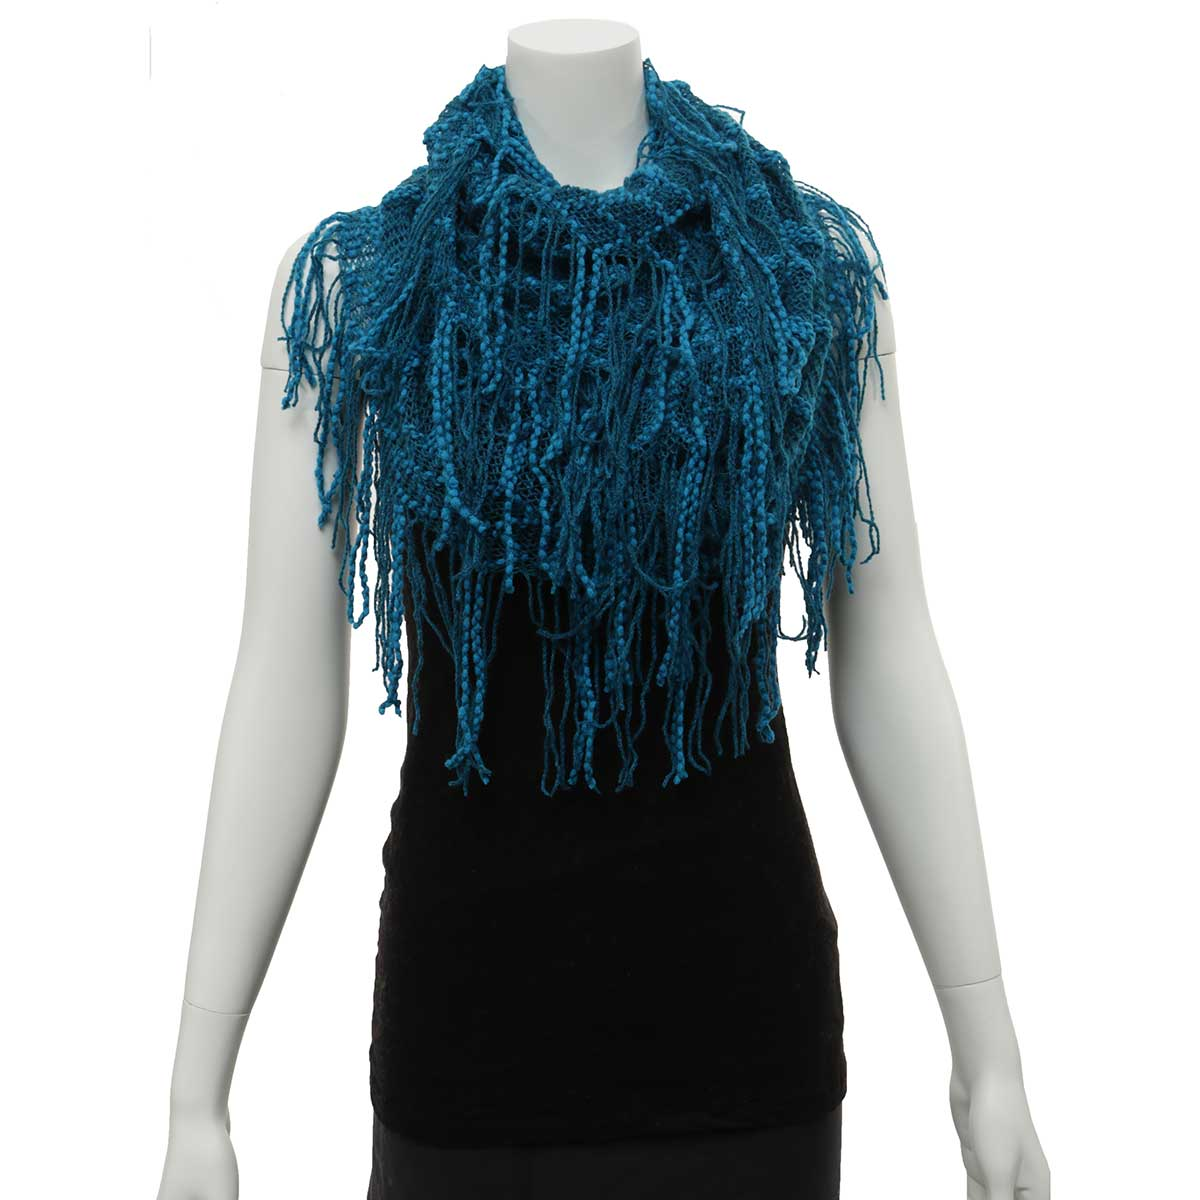 Teal and Blue Infinity Scarf with Fringe